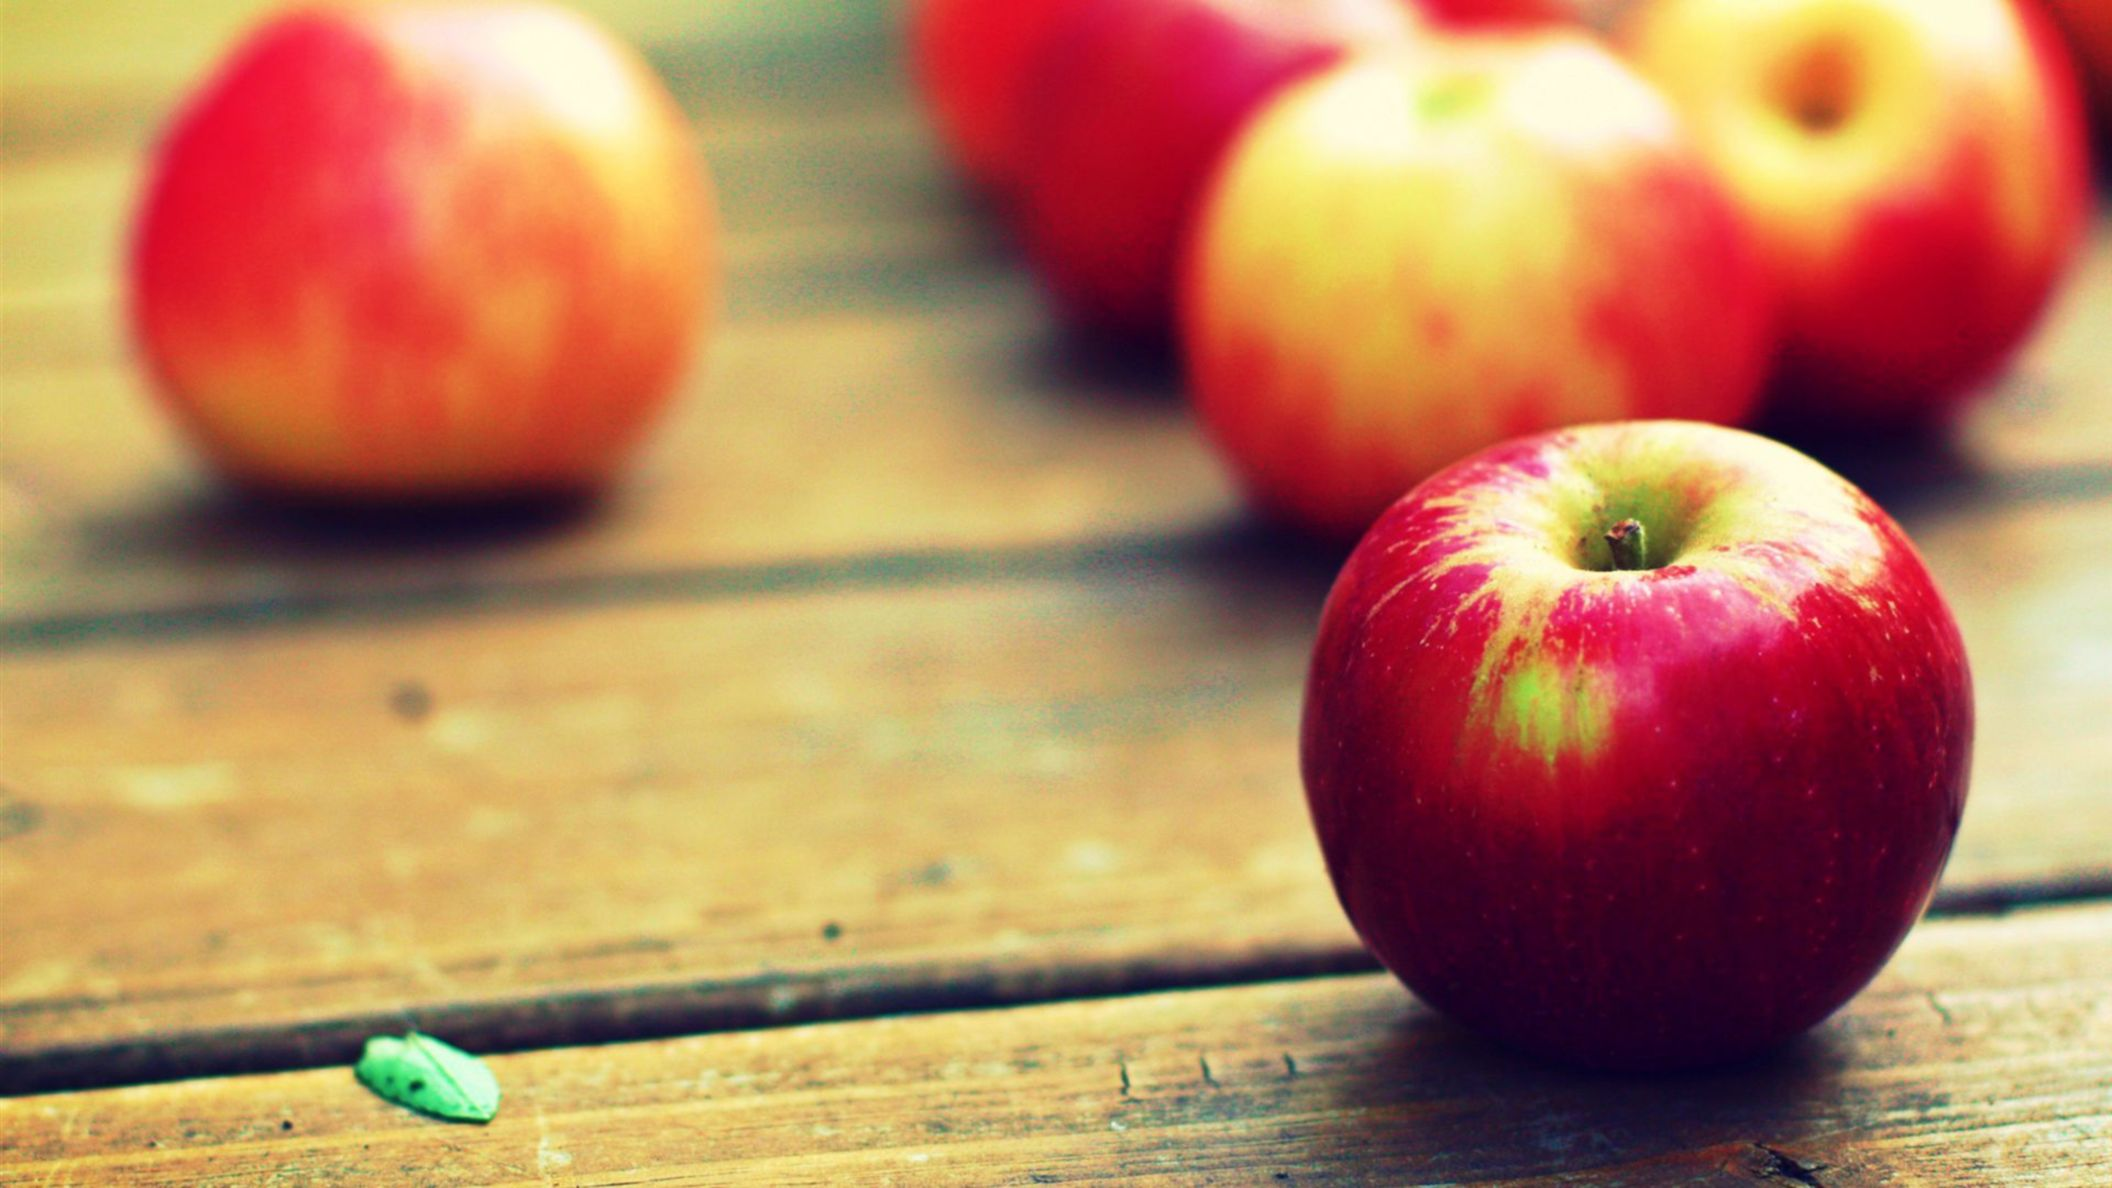 Vintage Red Apple Fruit Wallpaper